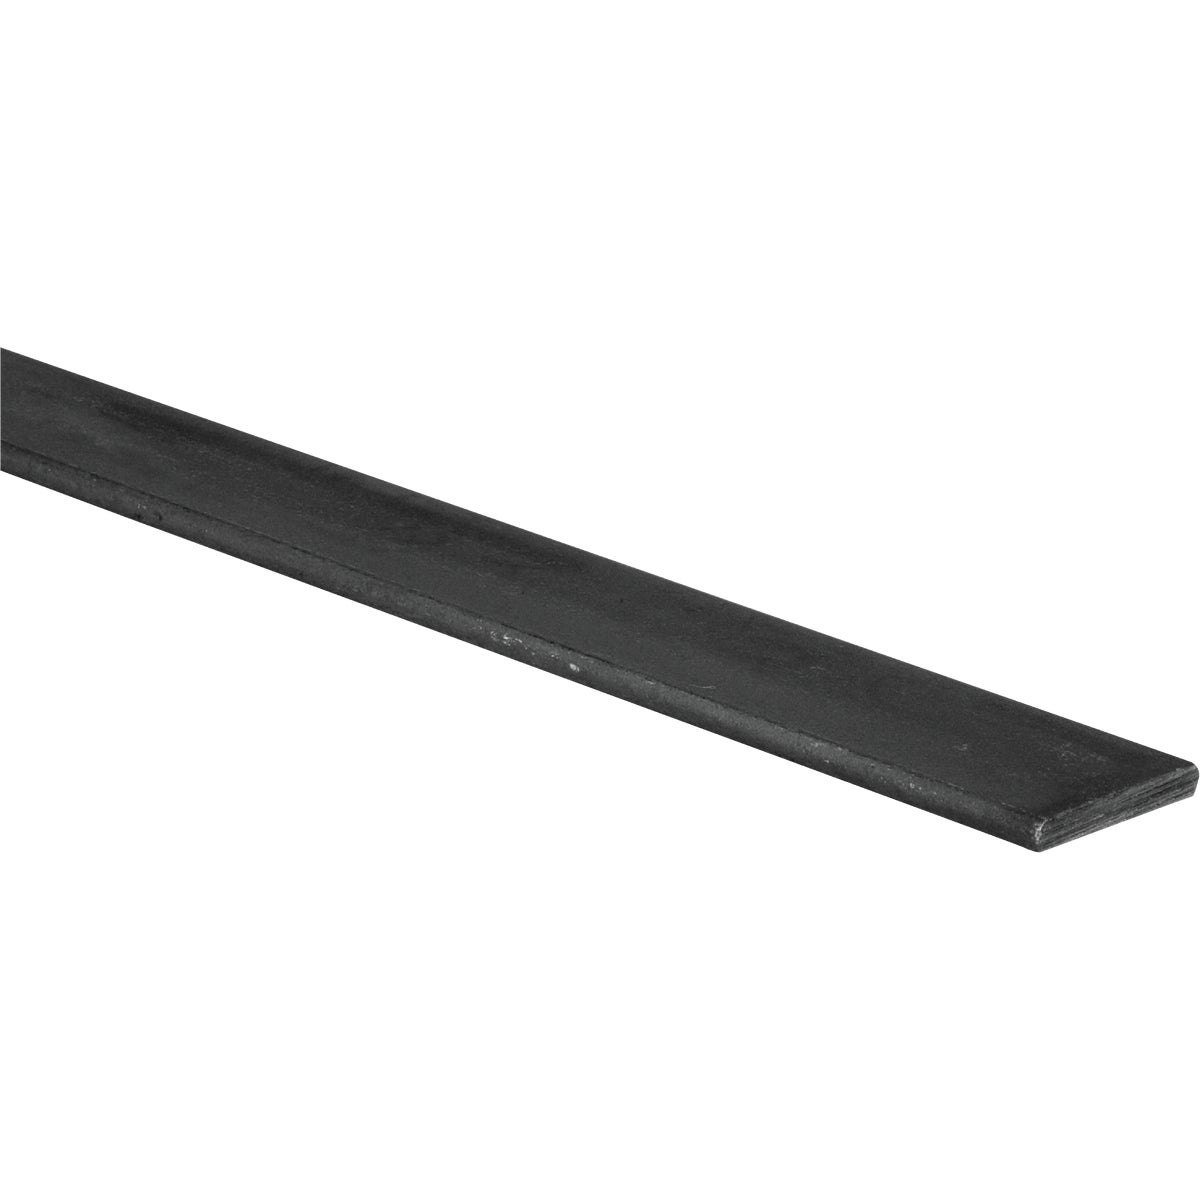 1X48 PS 3/16 SOLID FLAT - N215624 by National Mfg Co